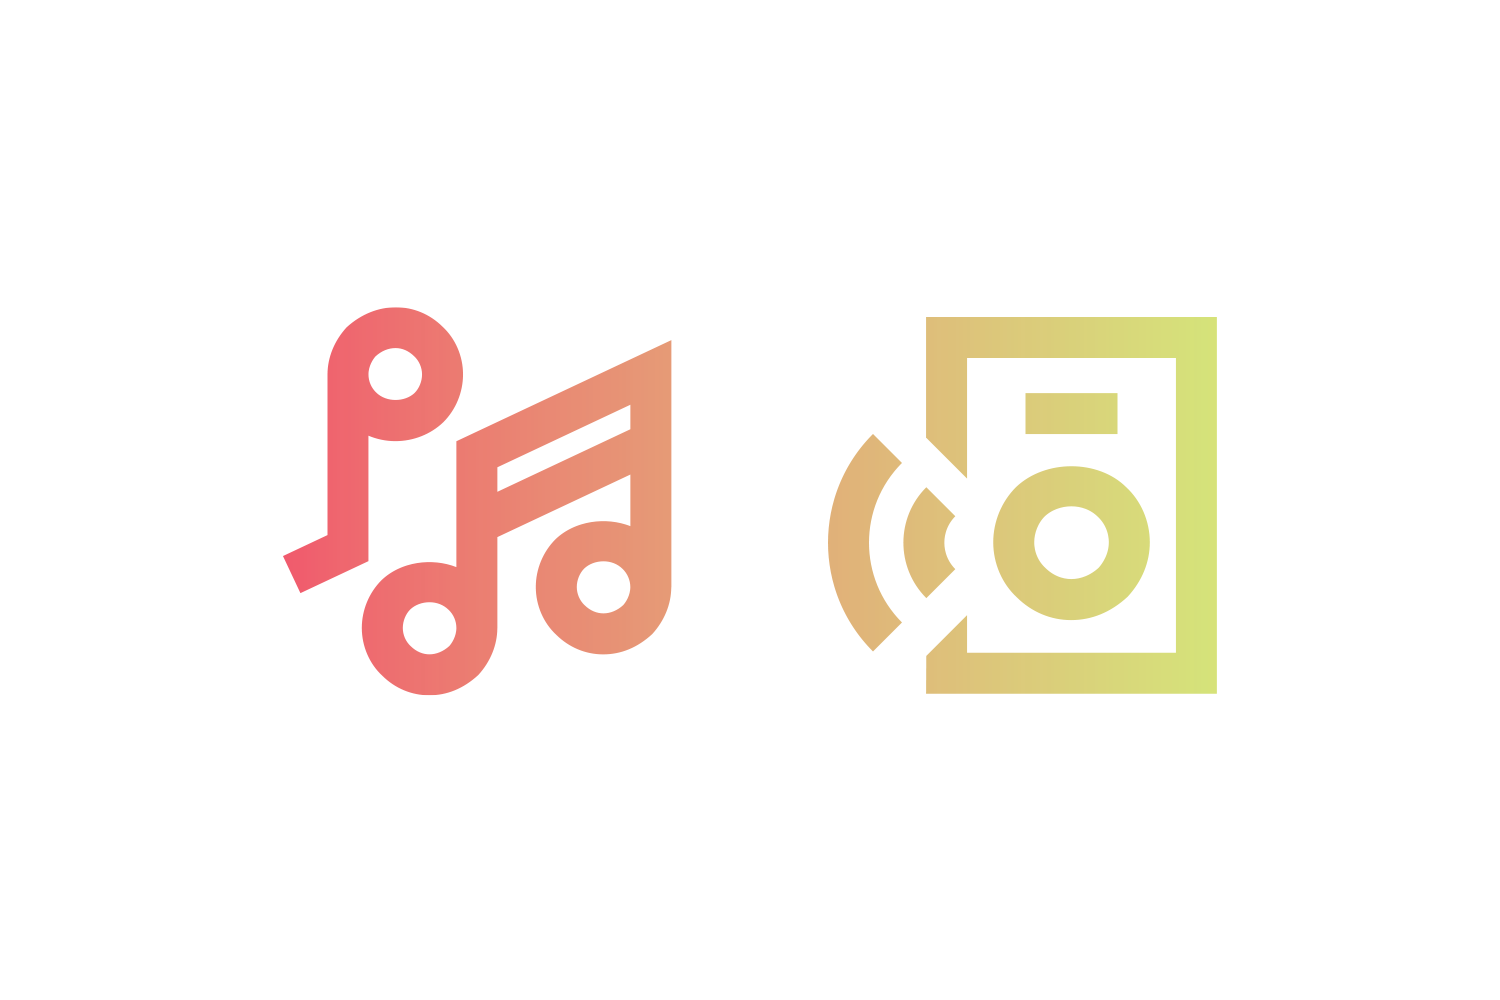 TCo_Eastercamp15_Icons_Music.png